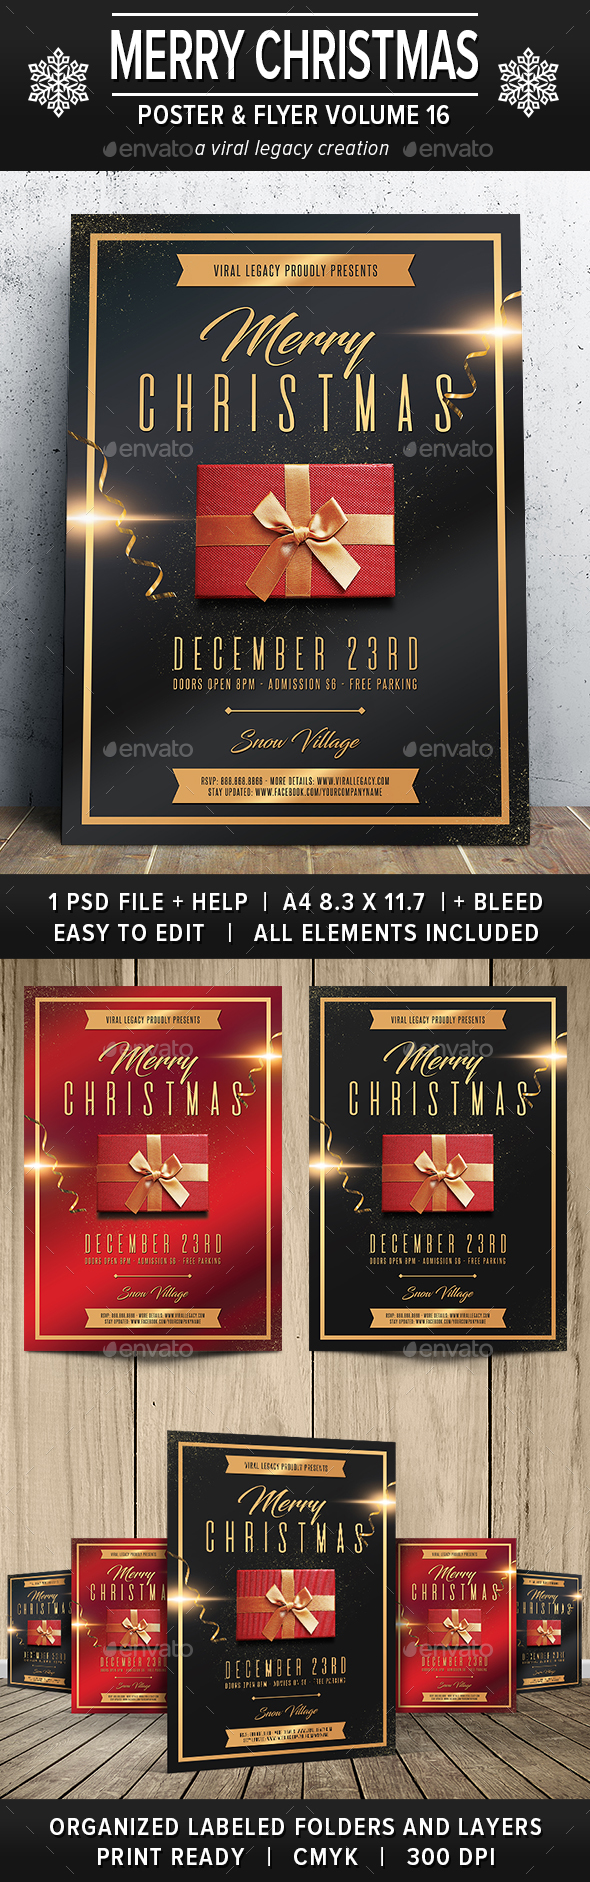 GraphicRiver Merry Christmas Poster Flyer V16 21017990